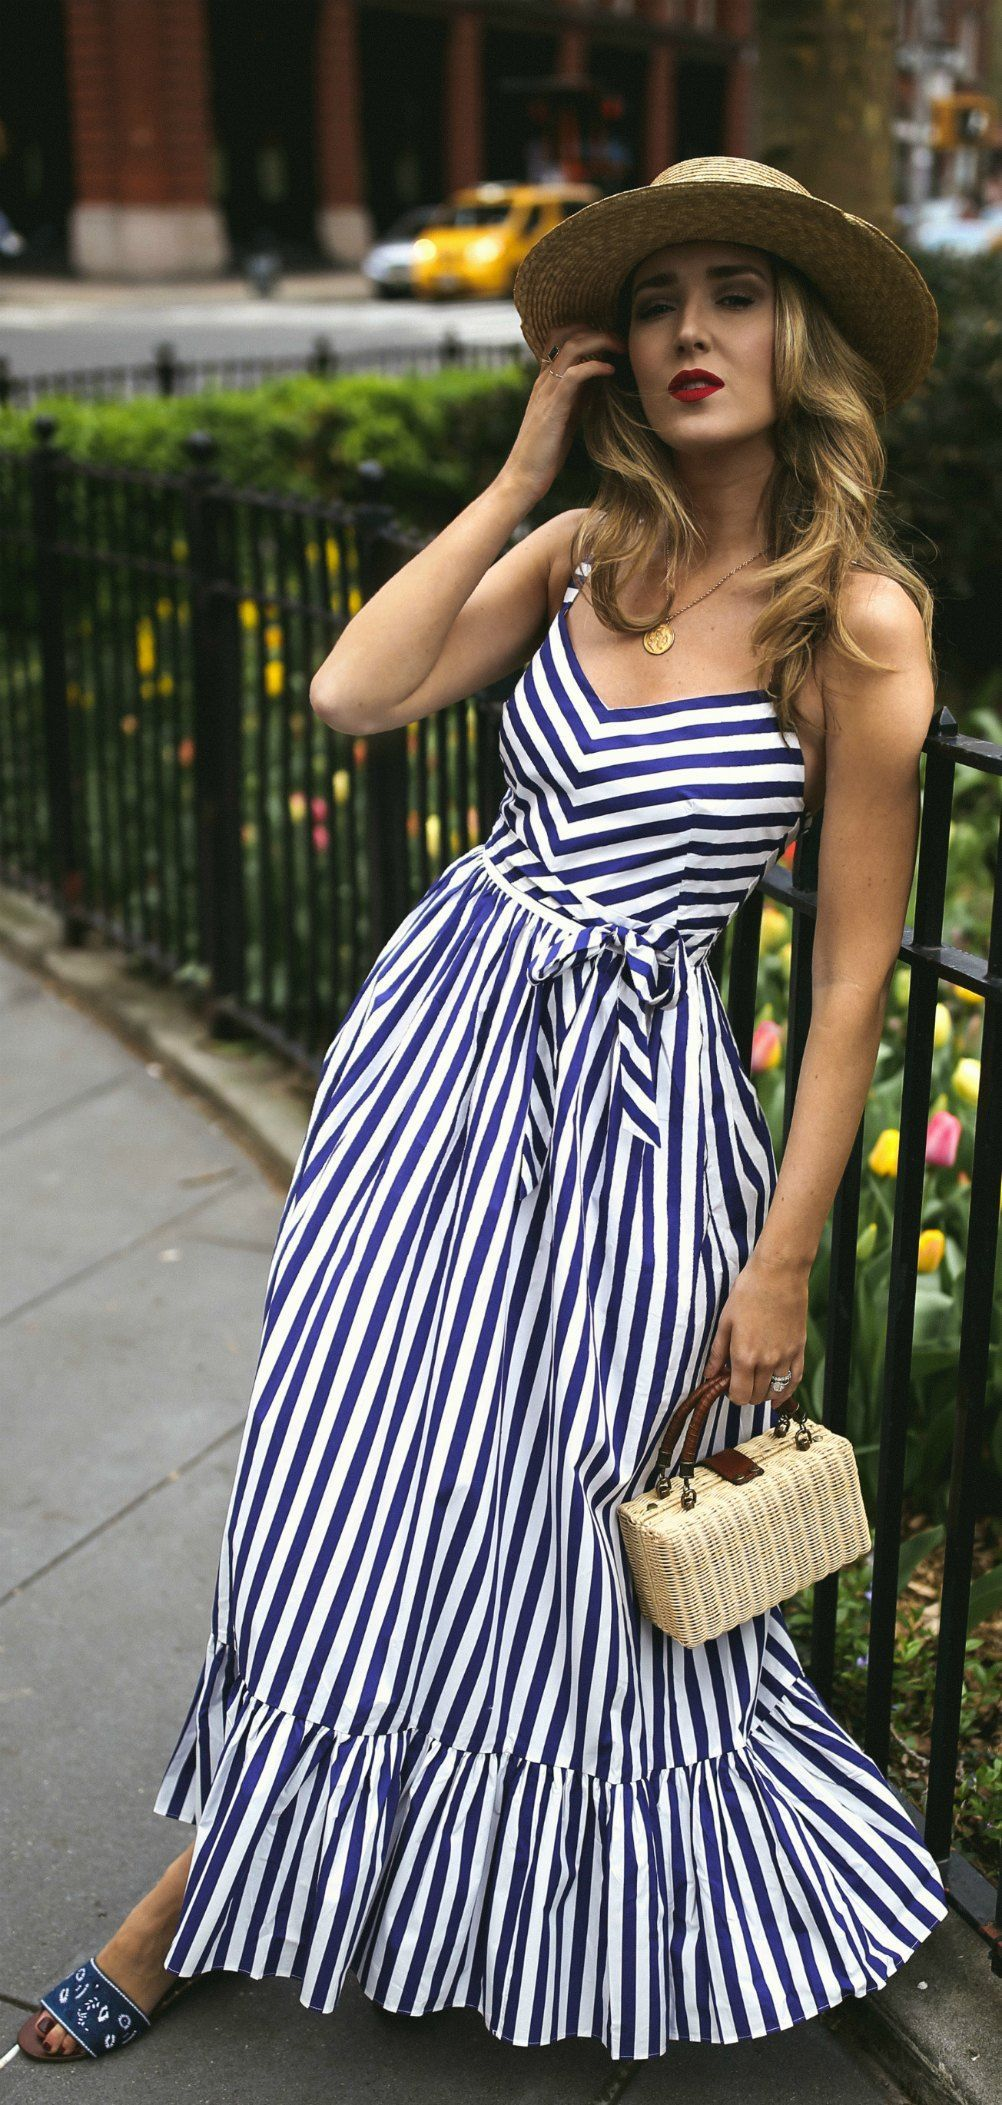 30 Dresses In 30 Days What To Wear To A Picnic Navy And White Stripe Maxi Dress Embroidered Navy Slides Small Woven Fashion Dresses Striped Maxi Dresses [ 2105 x 1002 Pixel ]